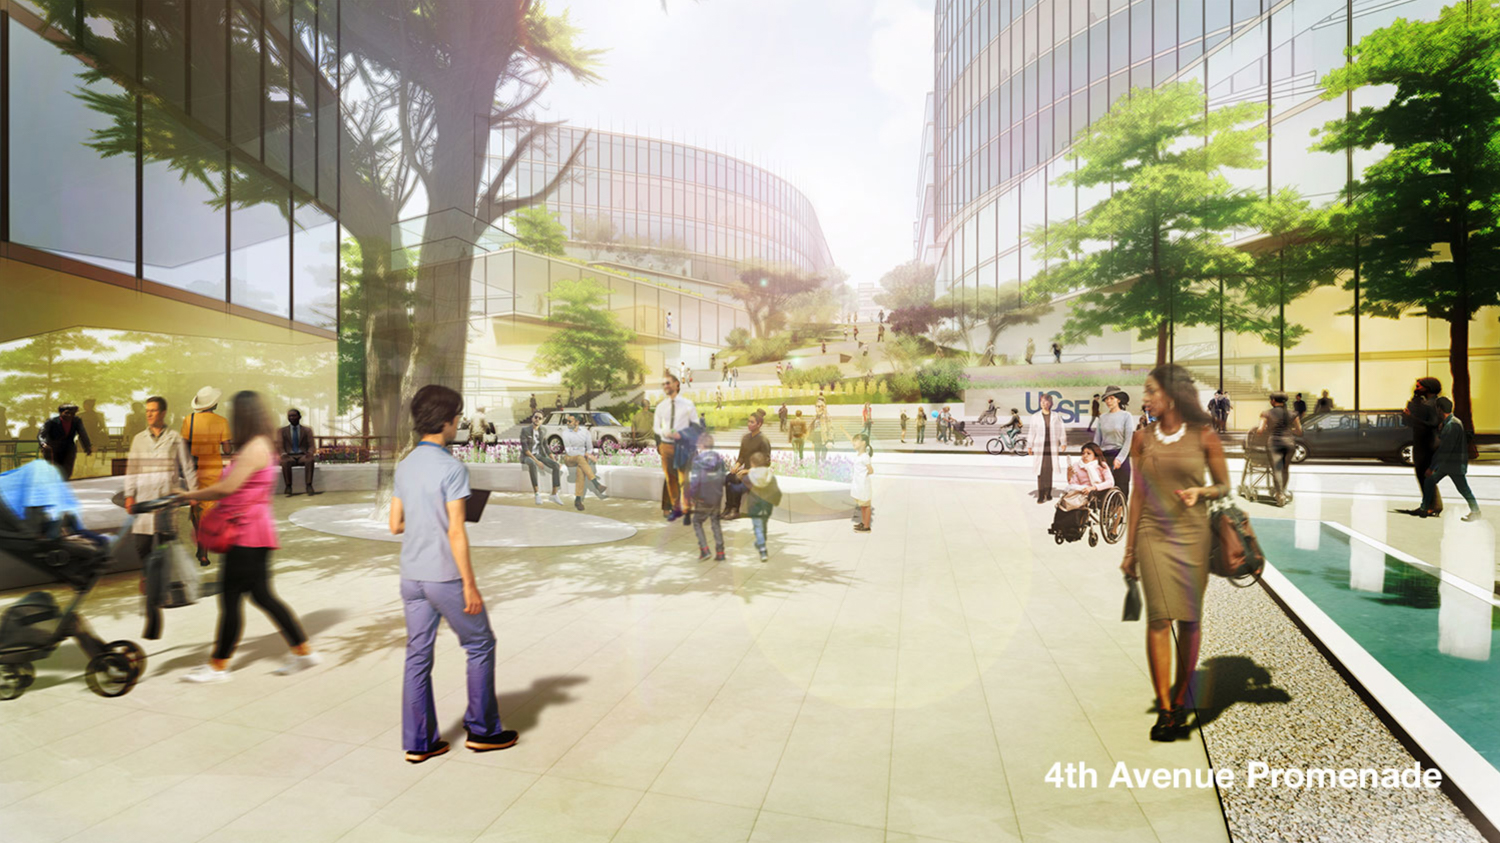 UCSF Parnassus Heights campus design concept from previous iteration, rendering by UCSF via Perkins Eastman